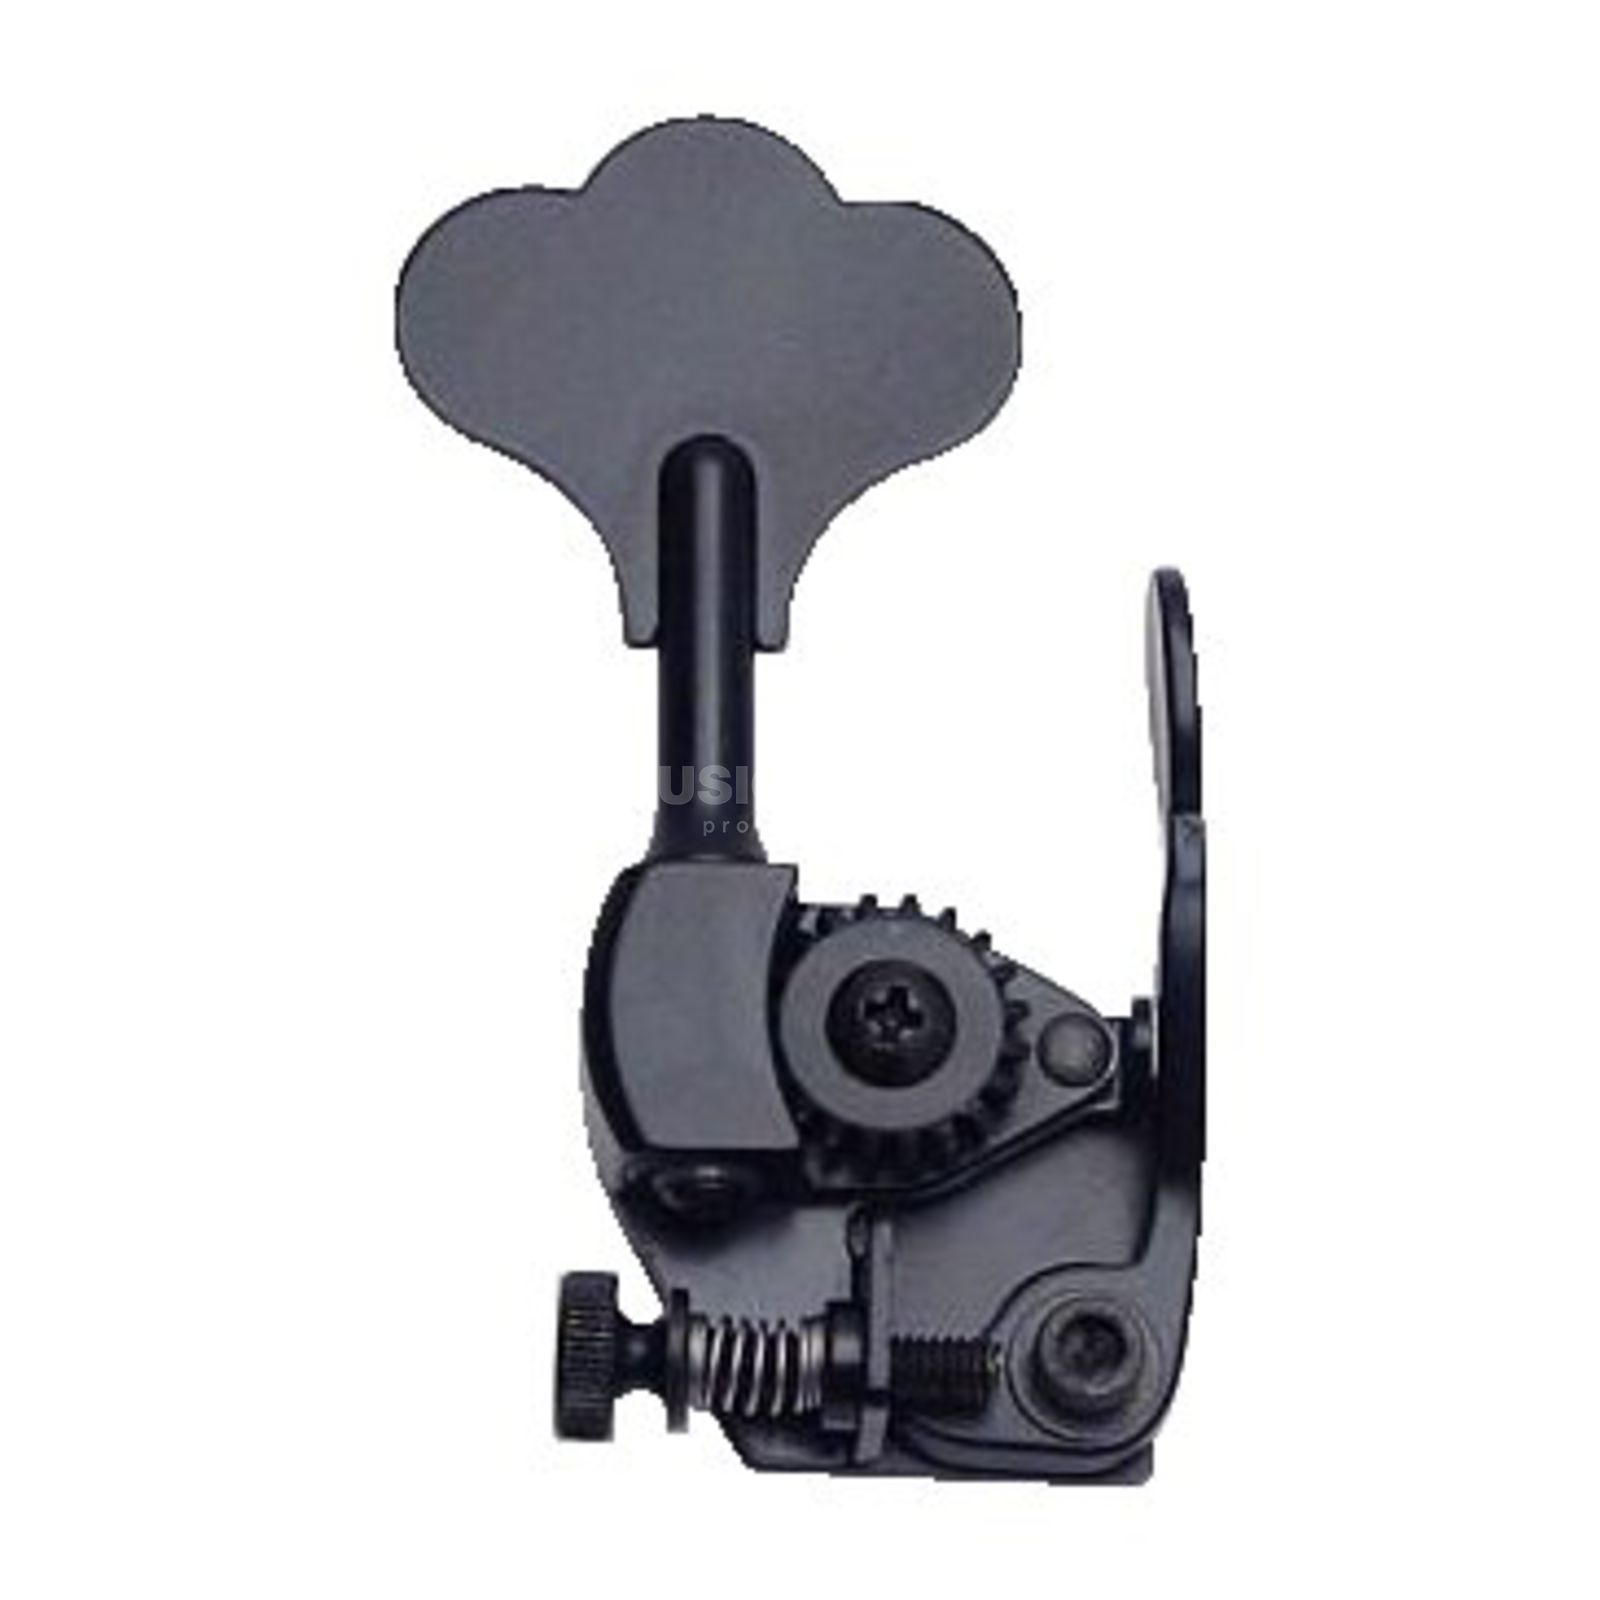 "Hipshot D'Tuner Extender Key HE6C-1/2"" Clover Key Ultralite Black Immagine prodotto"